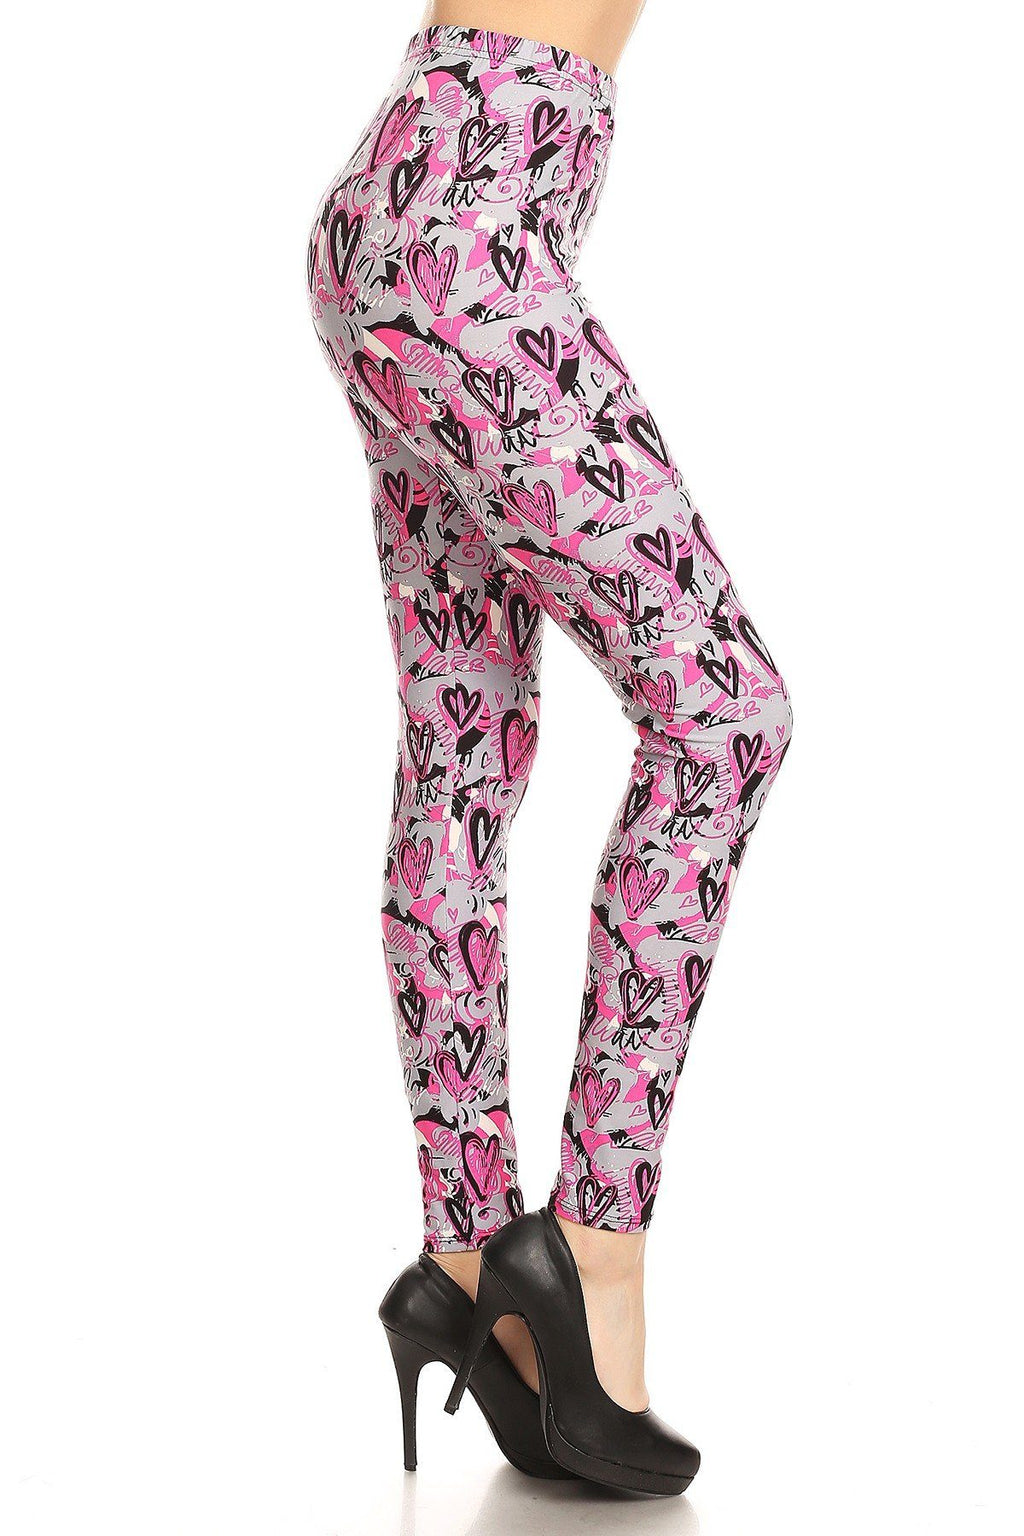 Women's Heart Printed Leggings Pink: OS and Plus Leggings MomMe and More